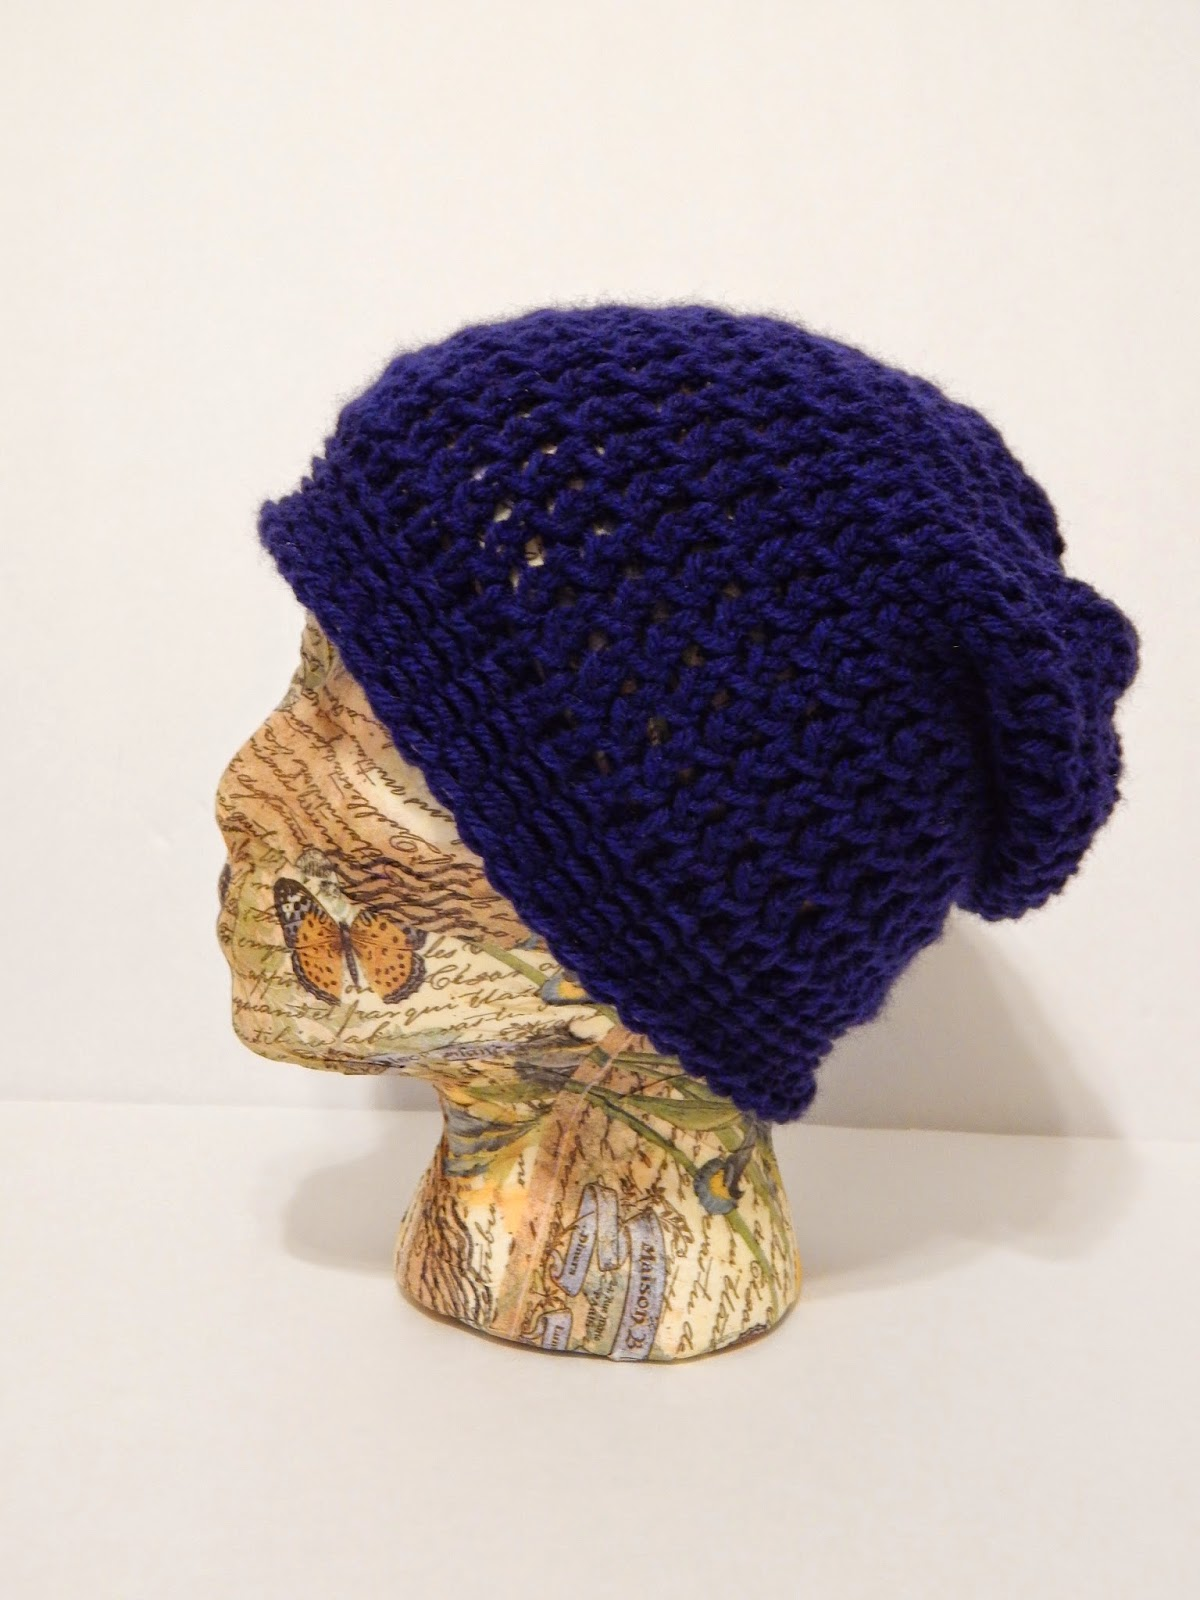 Knitting Loom Hat : Jovial knits loom knit slouchy hat bea s easy beanie